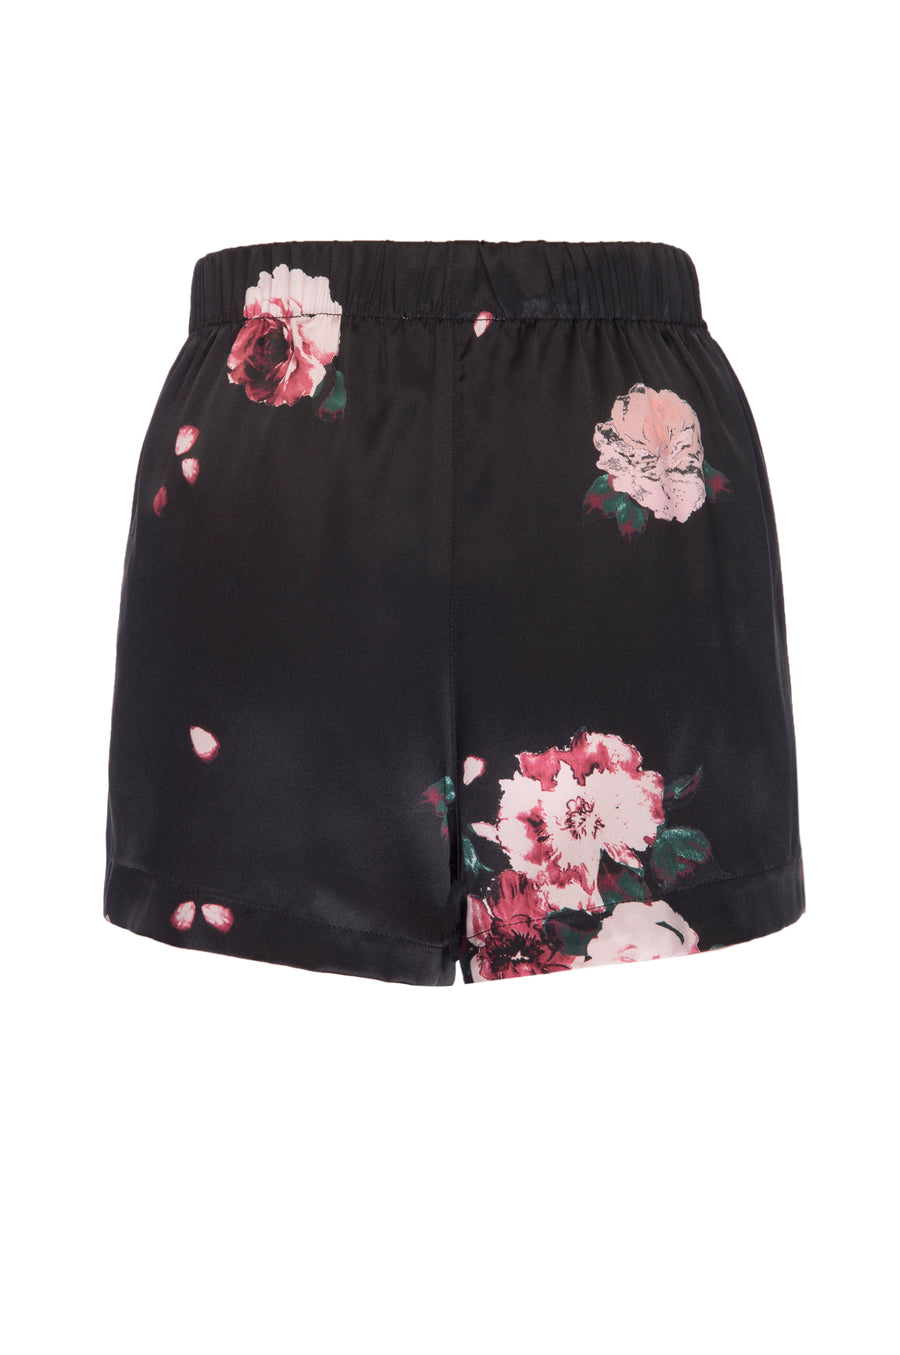 Silk Charmeuse PJ Shorts: Black Rose Print